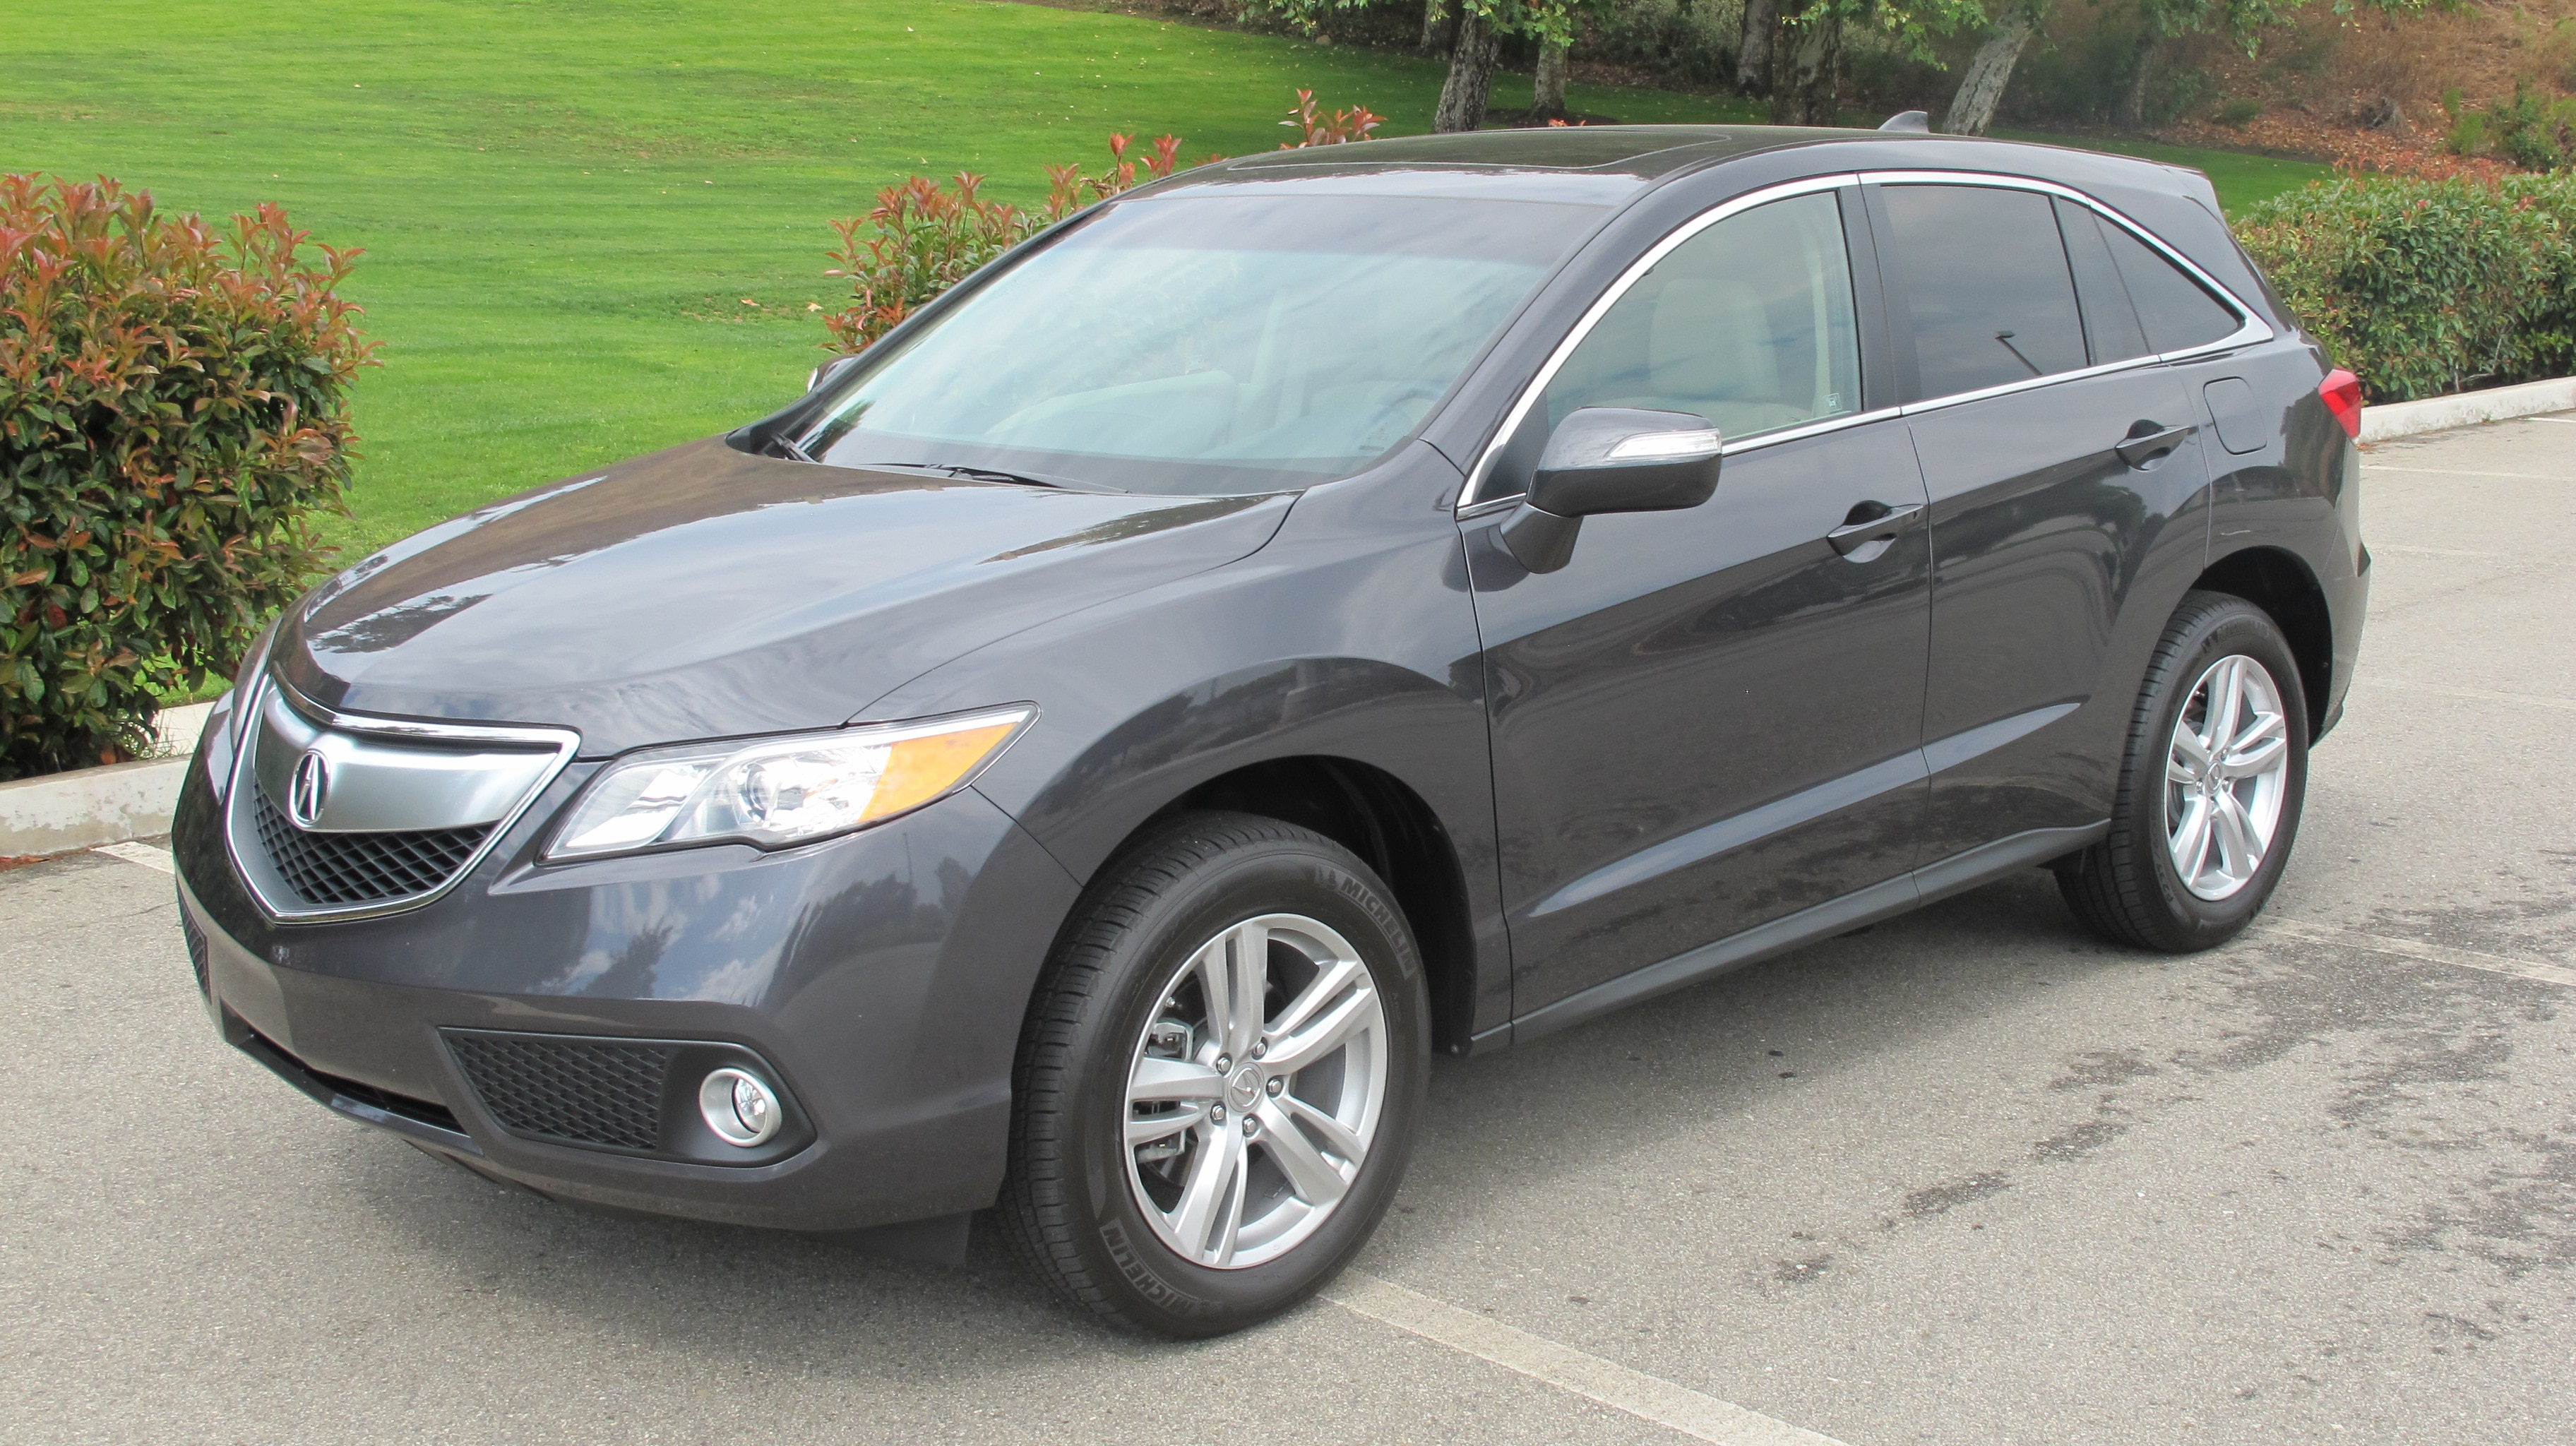 2013 Ford Edge Limited V6 AWD vs. 2013 Acura RDX AWD Tech